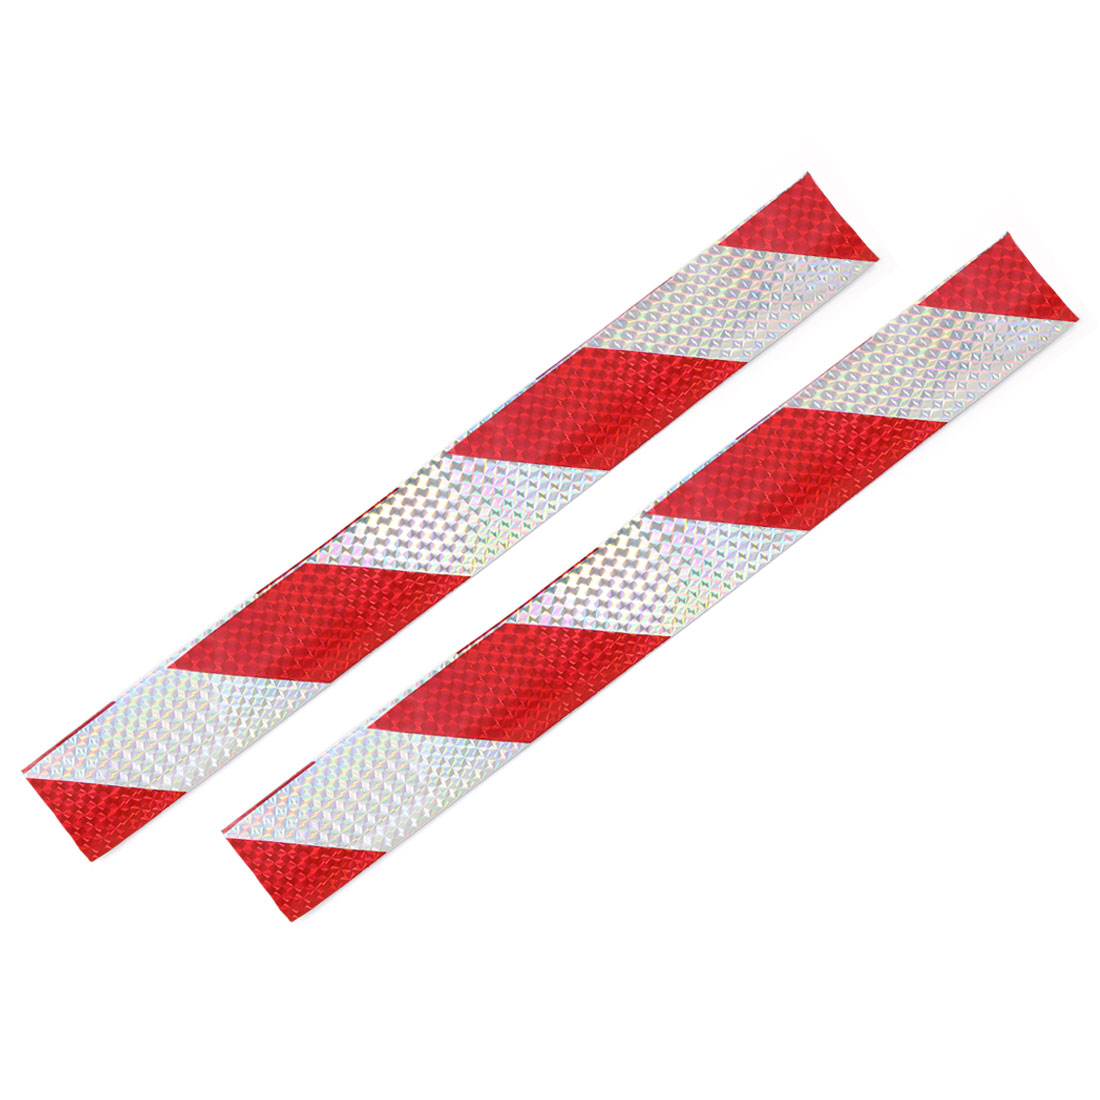 25 Pcs Red Sliver Tone Plastic Rectanglar Car Safety Reflective Sticker Strip 39.5cm x 5cm